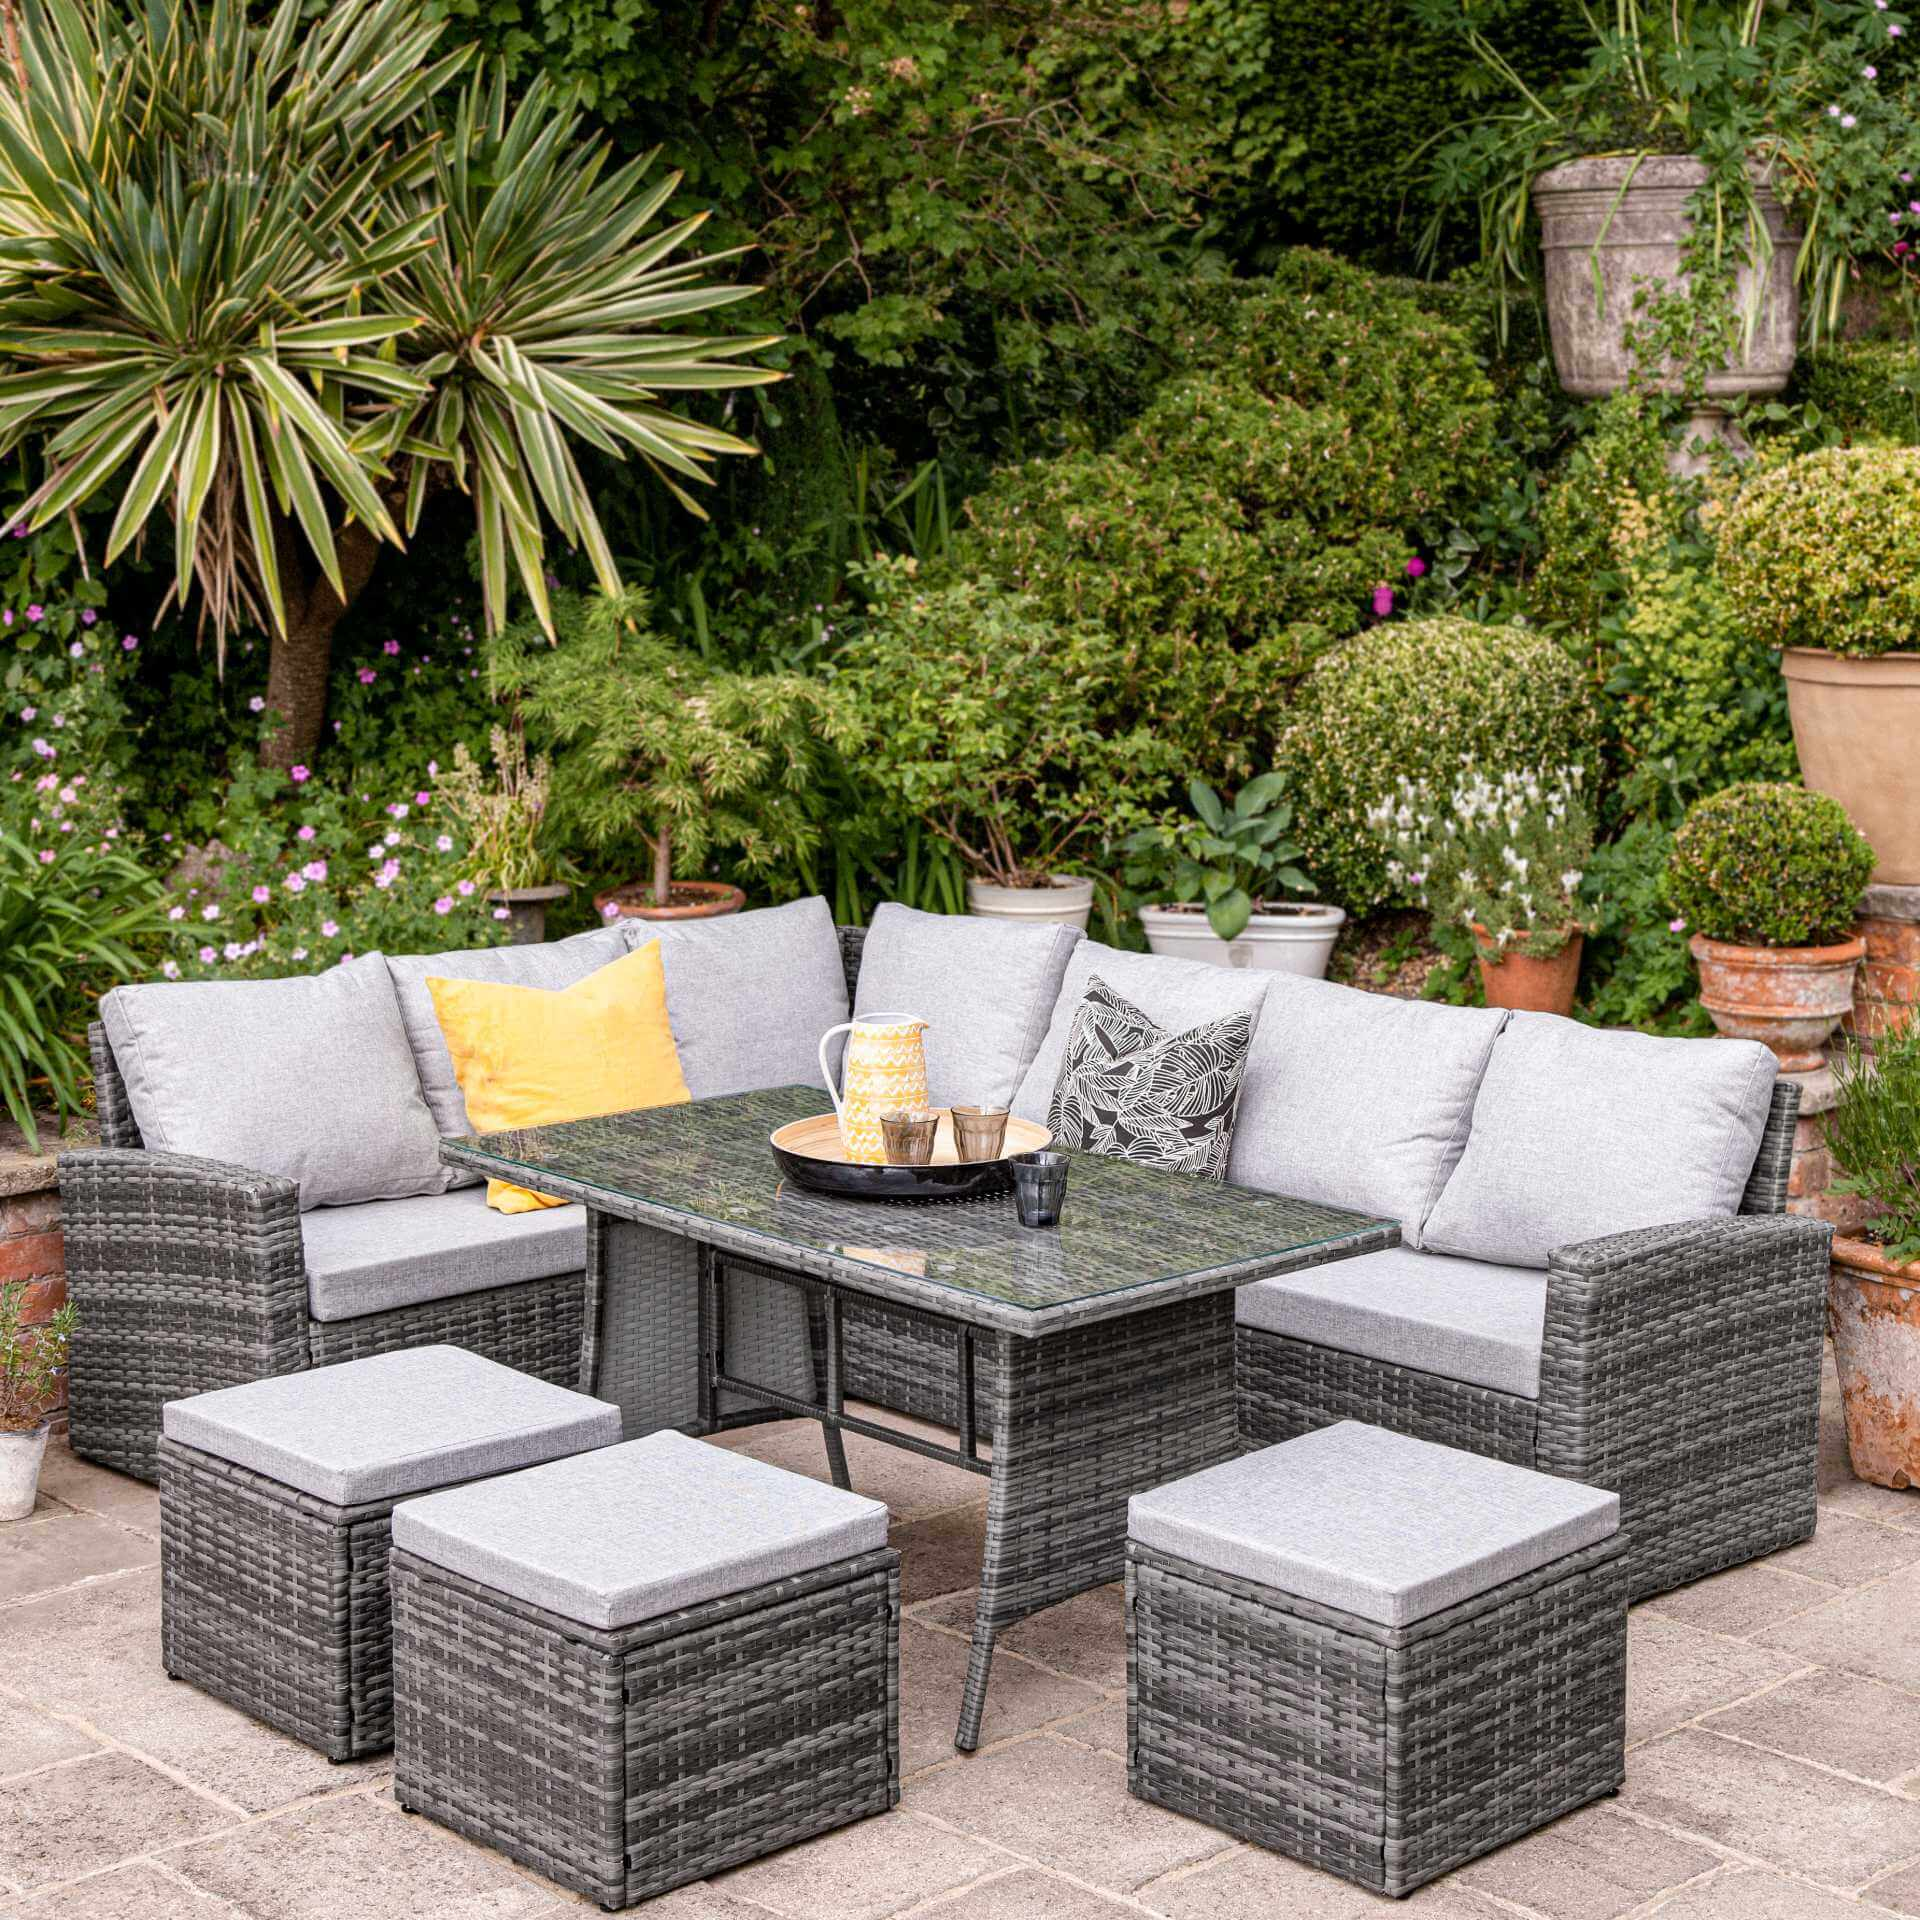 Better Homes And Gardens Replacement Cushions Azalea Ridge, Rattan Garden Furniture Buy Online From Laura James